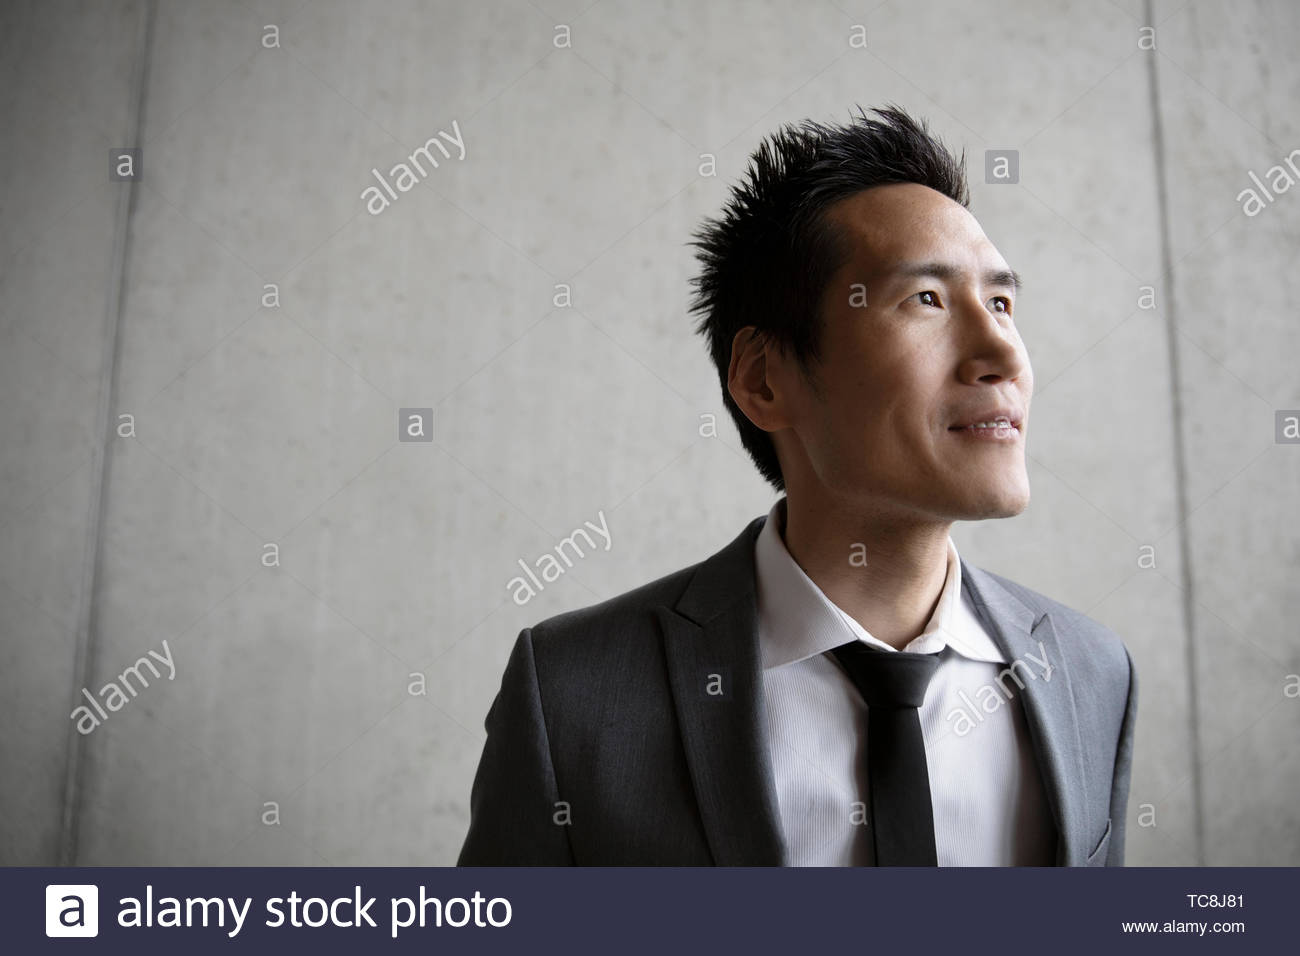 Ambitious, forward looking businessman Stock Photo